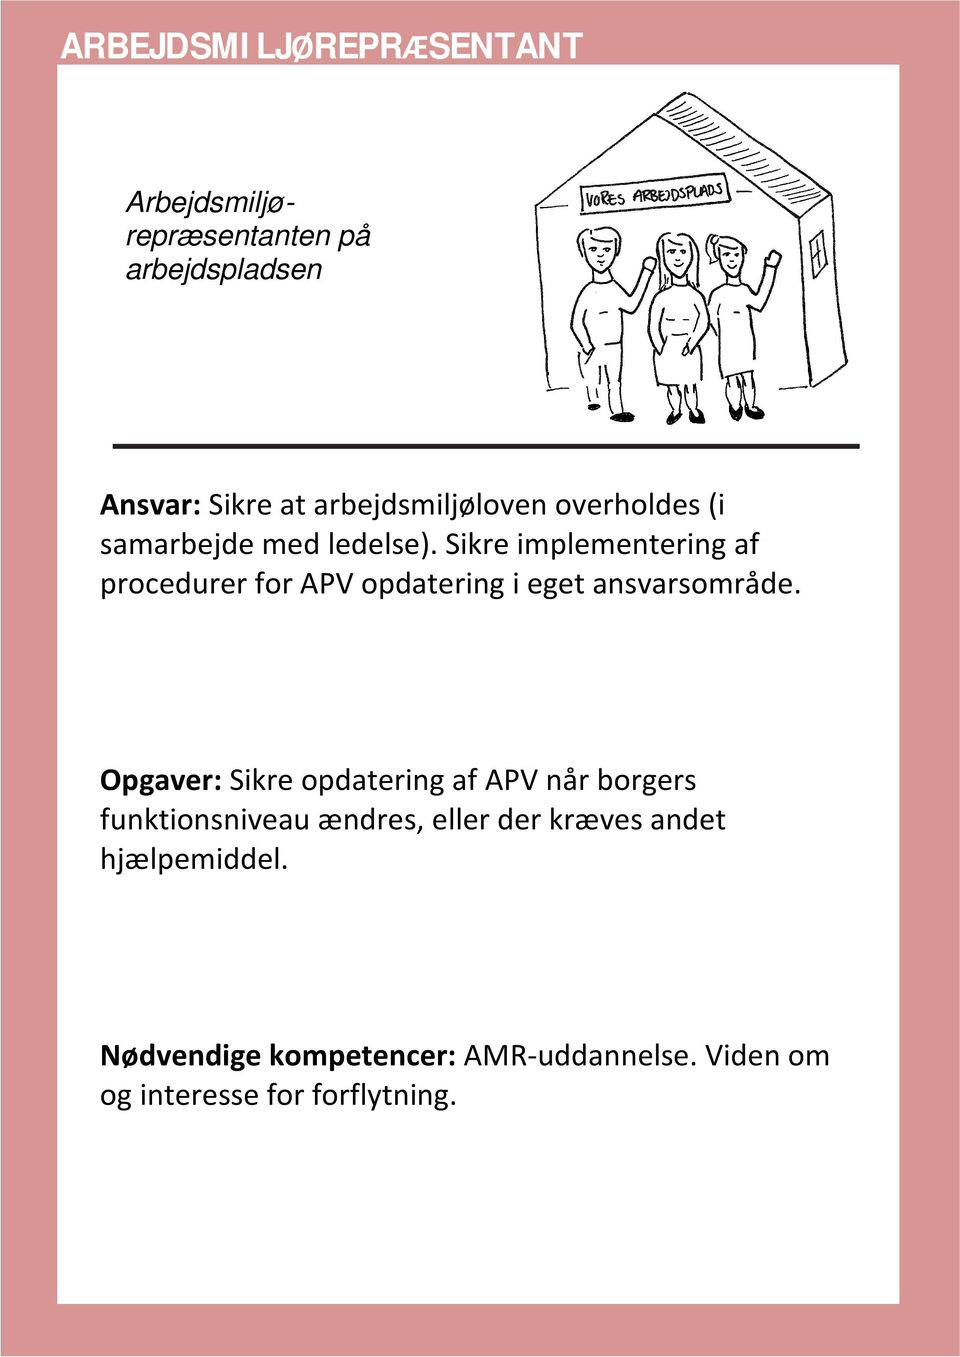 Sikre implementering af procedurer for APV opdatering i eget ansvarsområde.